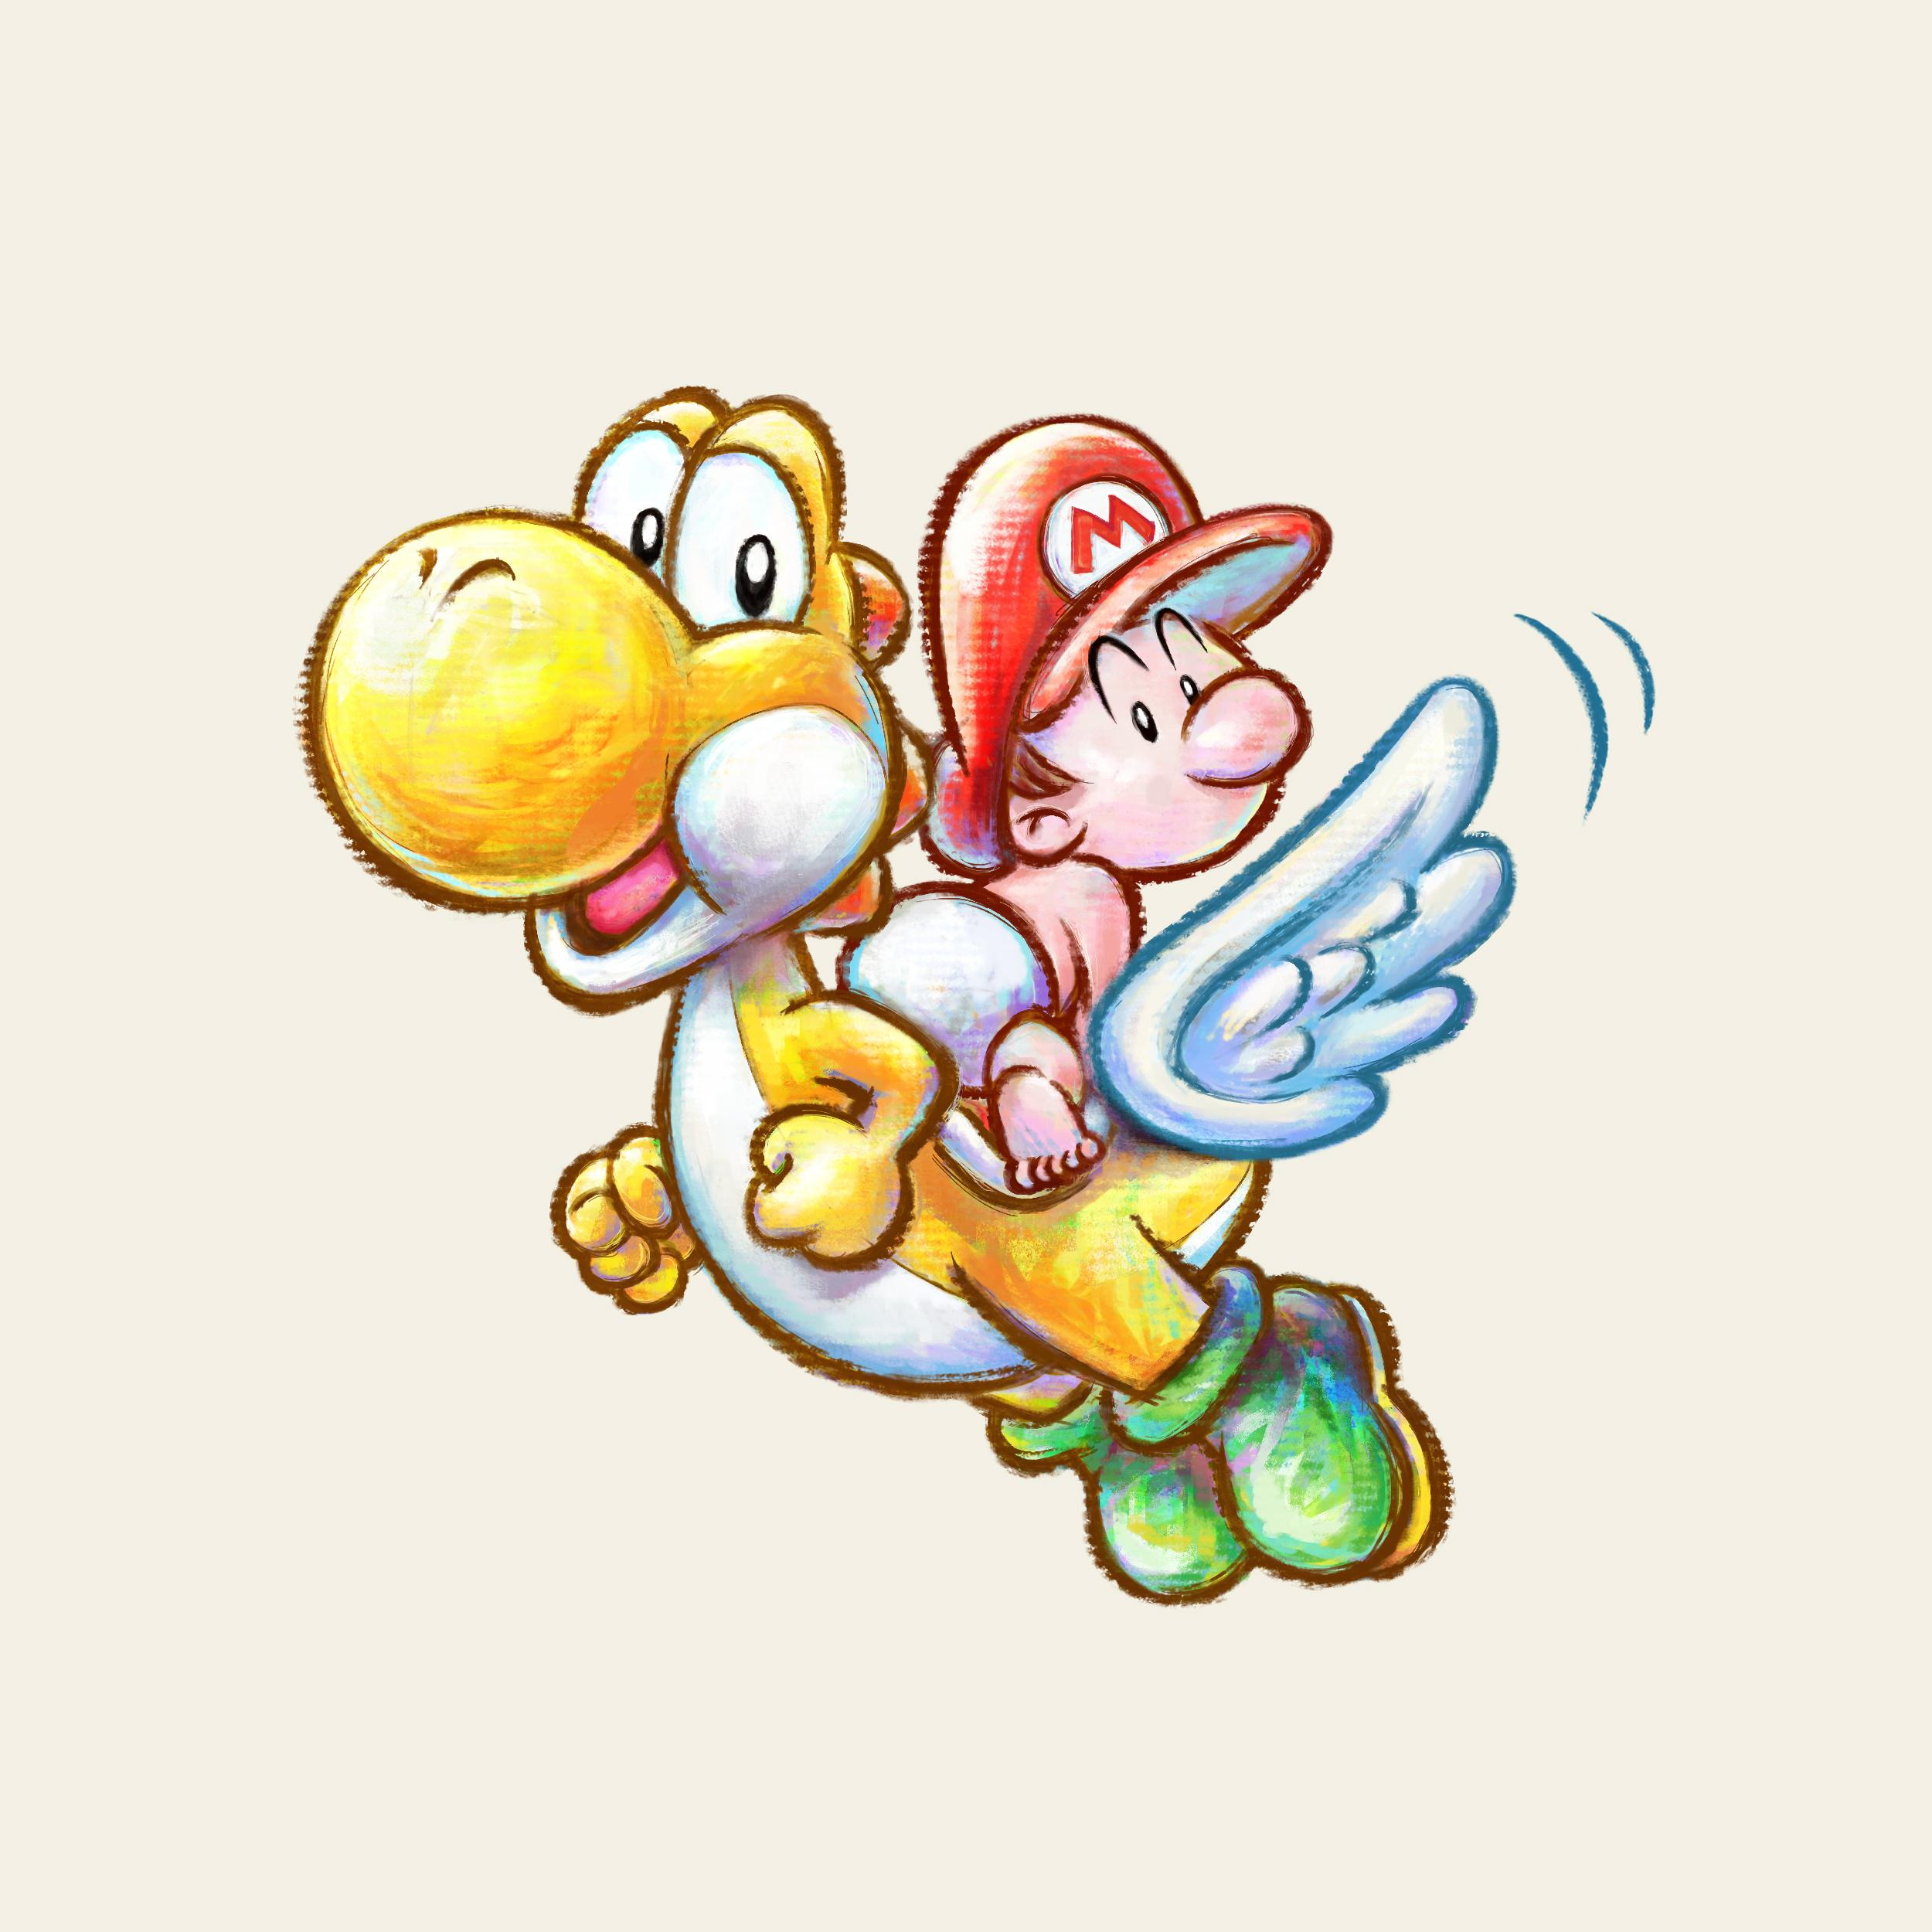 yoshi's new island 3ds artwork including lots of crazy